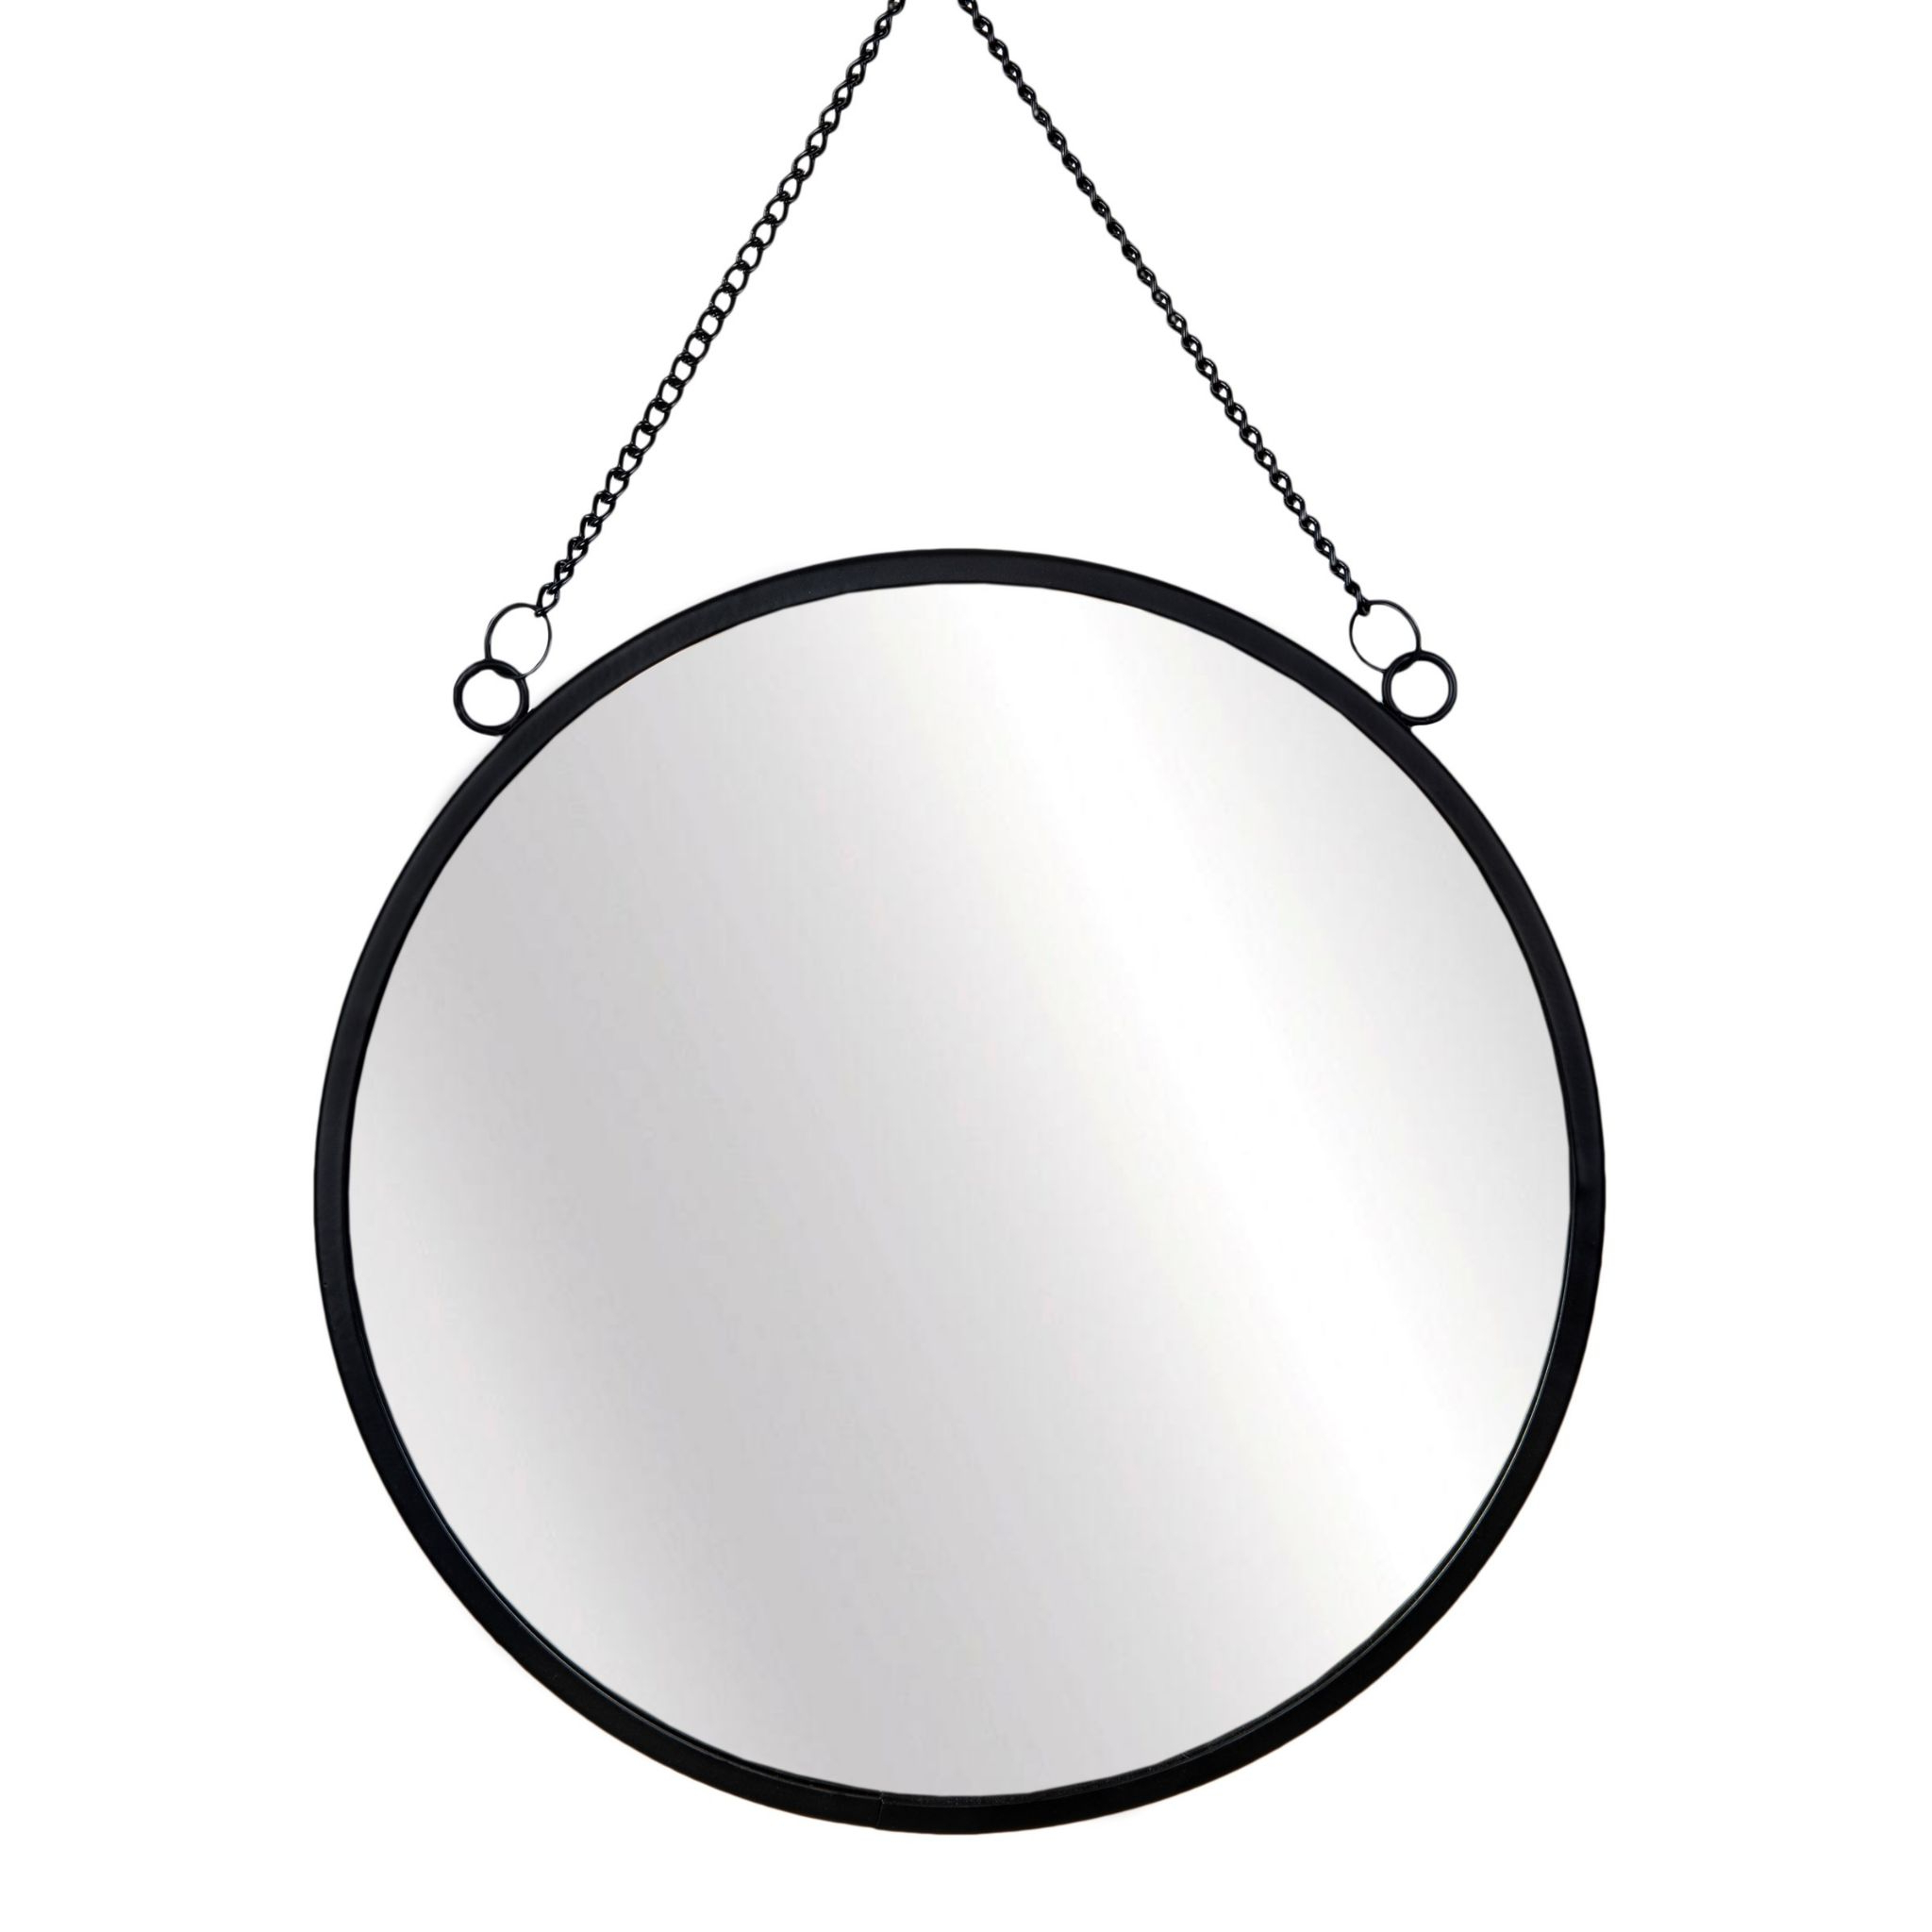 2020 Black Round Wall Mirror Intended For Black Round Wall Mirrors (View 11 of 20)